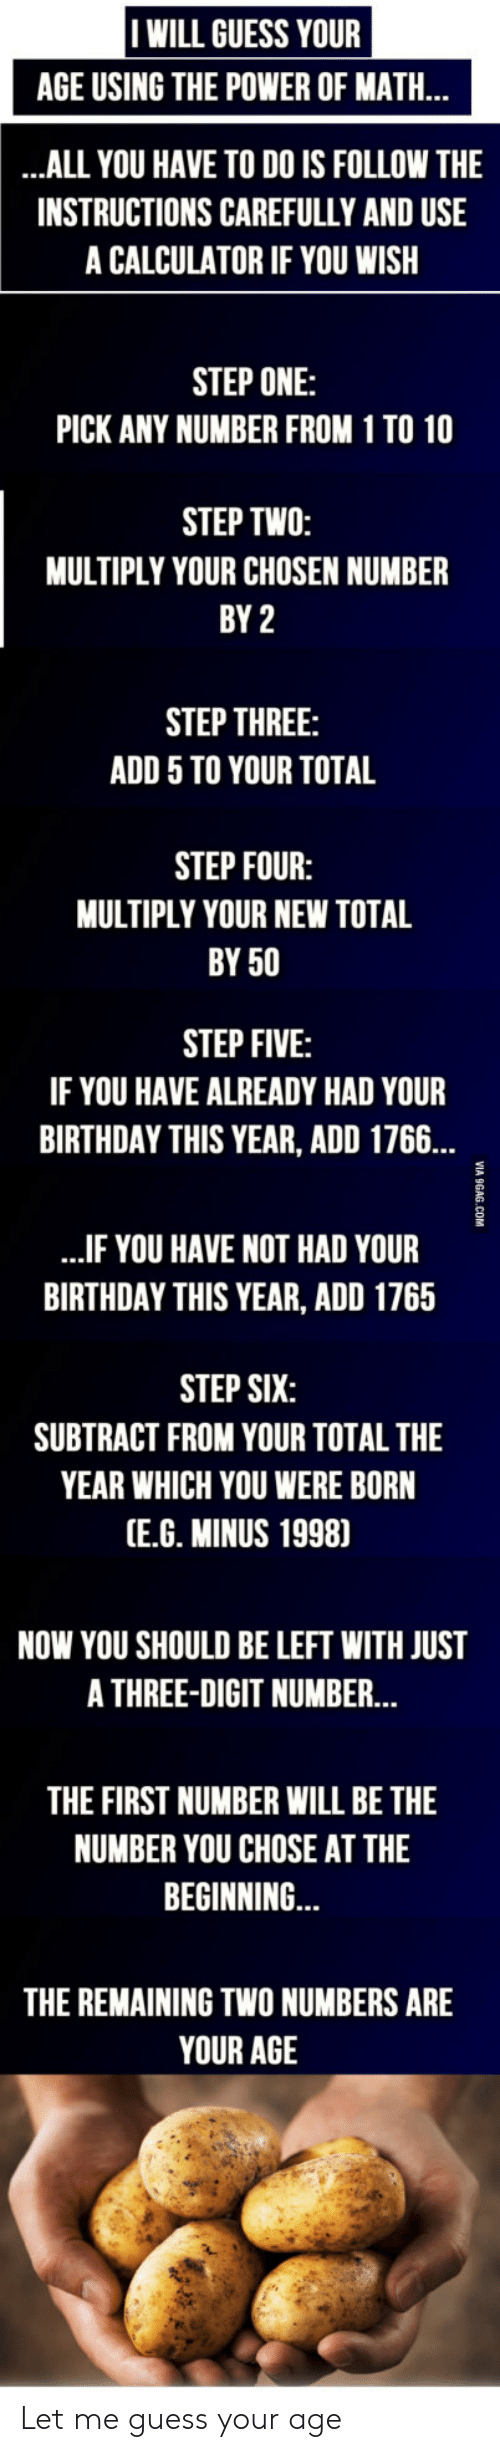 I WILL GUESS YOUR AGE USING THE POWER OF MATH ALL YOU HAVE